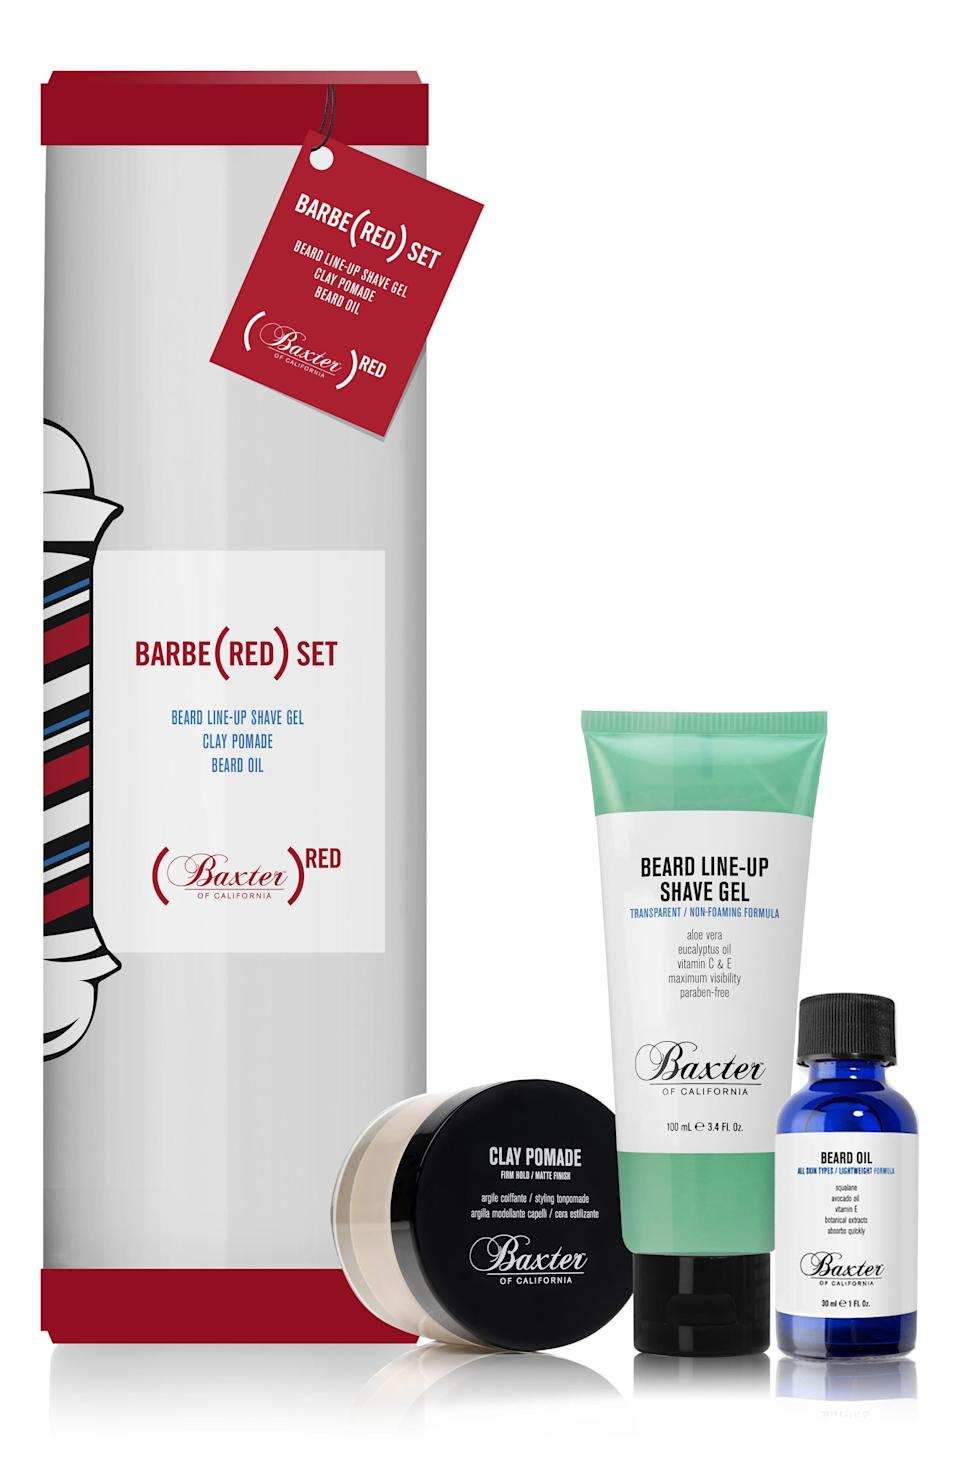 """<h3><strong>Baxter Of California</strong> Barbe(RED) Kit</h3><br><br>Restock your dad's grooming kit with this shave gel, styling clay, and beard oil combo that doesn't just look good, but <em>does</em> some good, too. With every purchase, 20% of the retail price goes directly to the fight against HIV/AIDS in <a href=""""https://www.baxterofcalifornia.com/red"""" rel=""""nofollow noopener"""" target=""""_blank"""" data-ylk=""""slk:partnership with (RED)"""" class=""""link rapid-noclick-resp"""">partnership with (RED)</a>.<br><br><strong>Baxter of California</strong> Barbe(RED) Kit, $, available at <a href=""""https://go.skimresources.com/?id=30283X879131&url=https%3A%2F%2Fshop.nordstrom.com%2Fs%2Fbaxter-of-california-barbered-kit-68-value%2F5102397%3Forigin%3Dcategory-personalizedsort%26breadcrumb%3DHome%252FMen%252FGrooming%2520%2526%2520Cologne%252FGifts%2520%2526%2520Sets%26color%3Dnone"""" rel=""""nofollow noopener"""" target=""""_blank"""" data-ylk=""""slk:Nordstrom"""" class=""""link rapid-noclick-resp"""">Nordstrom</a>"""